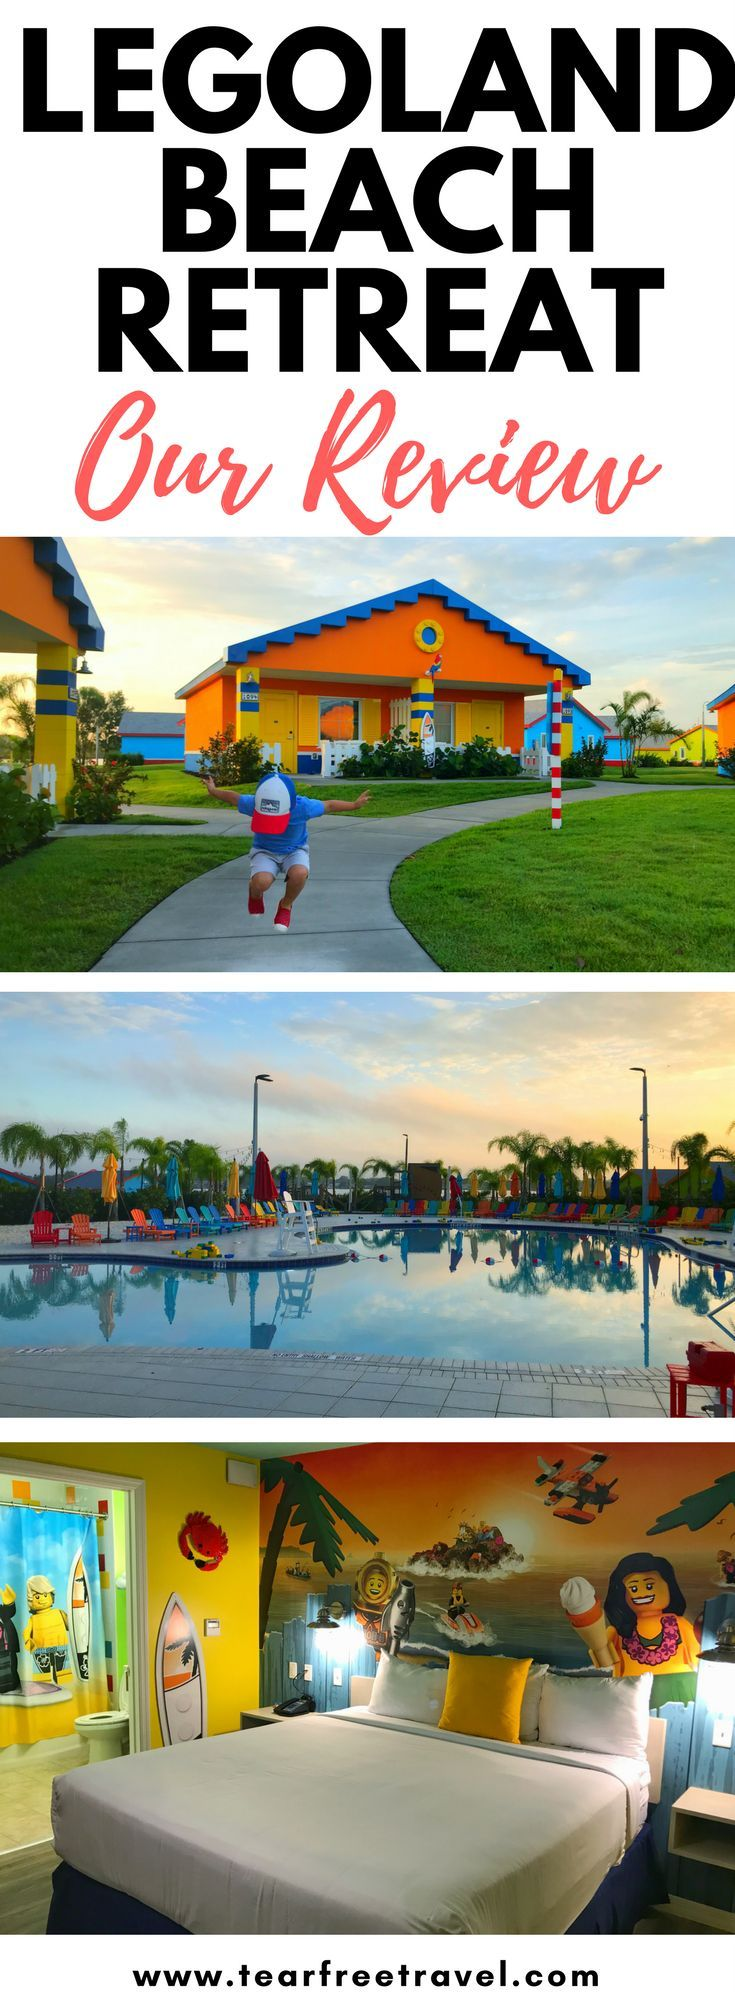 Looking for the best legoland florida hotel? Our review of the fabulous legoland beach retreat. Check out our detailed review of all the resort amenities. The best legoland area hotel! #legoland #legolandflorida #legolandbeachretreat #legolandhotel #legolandfloridahotel